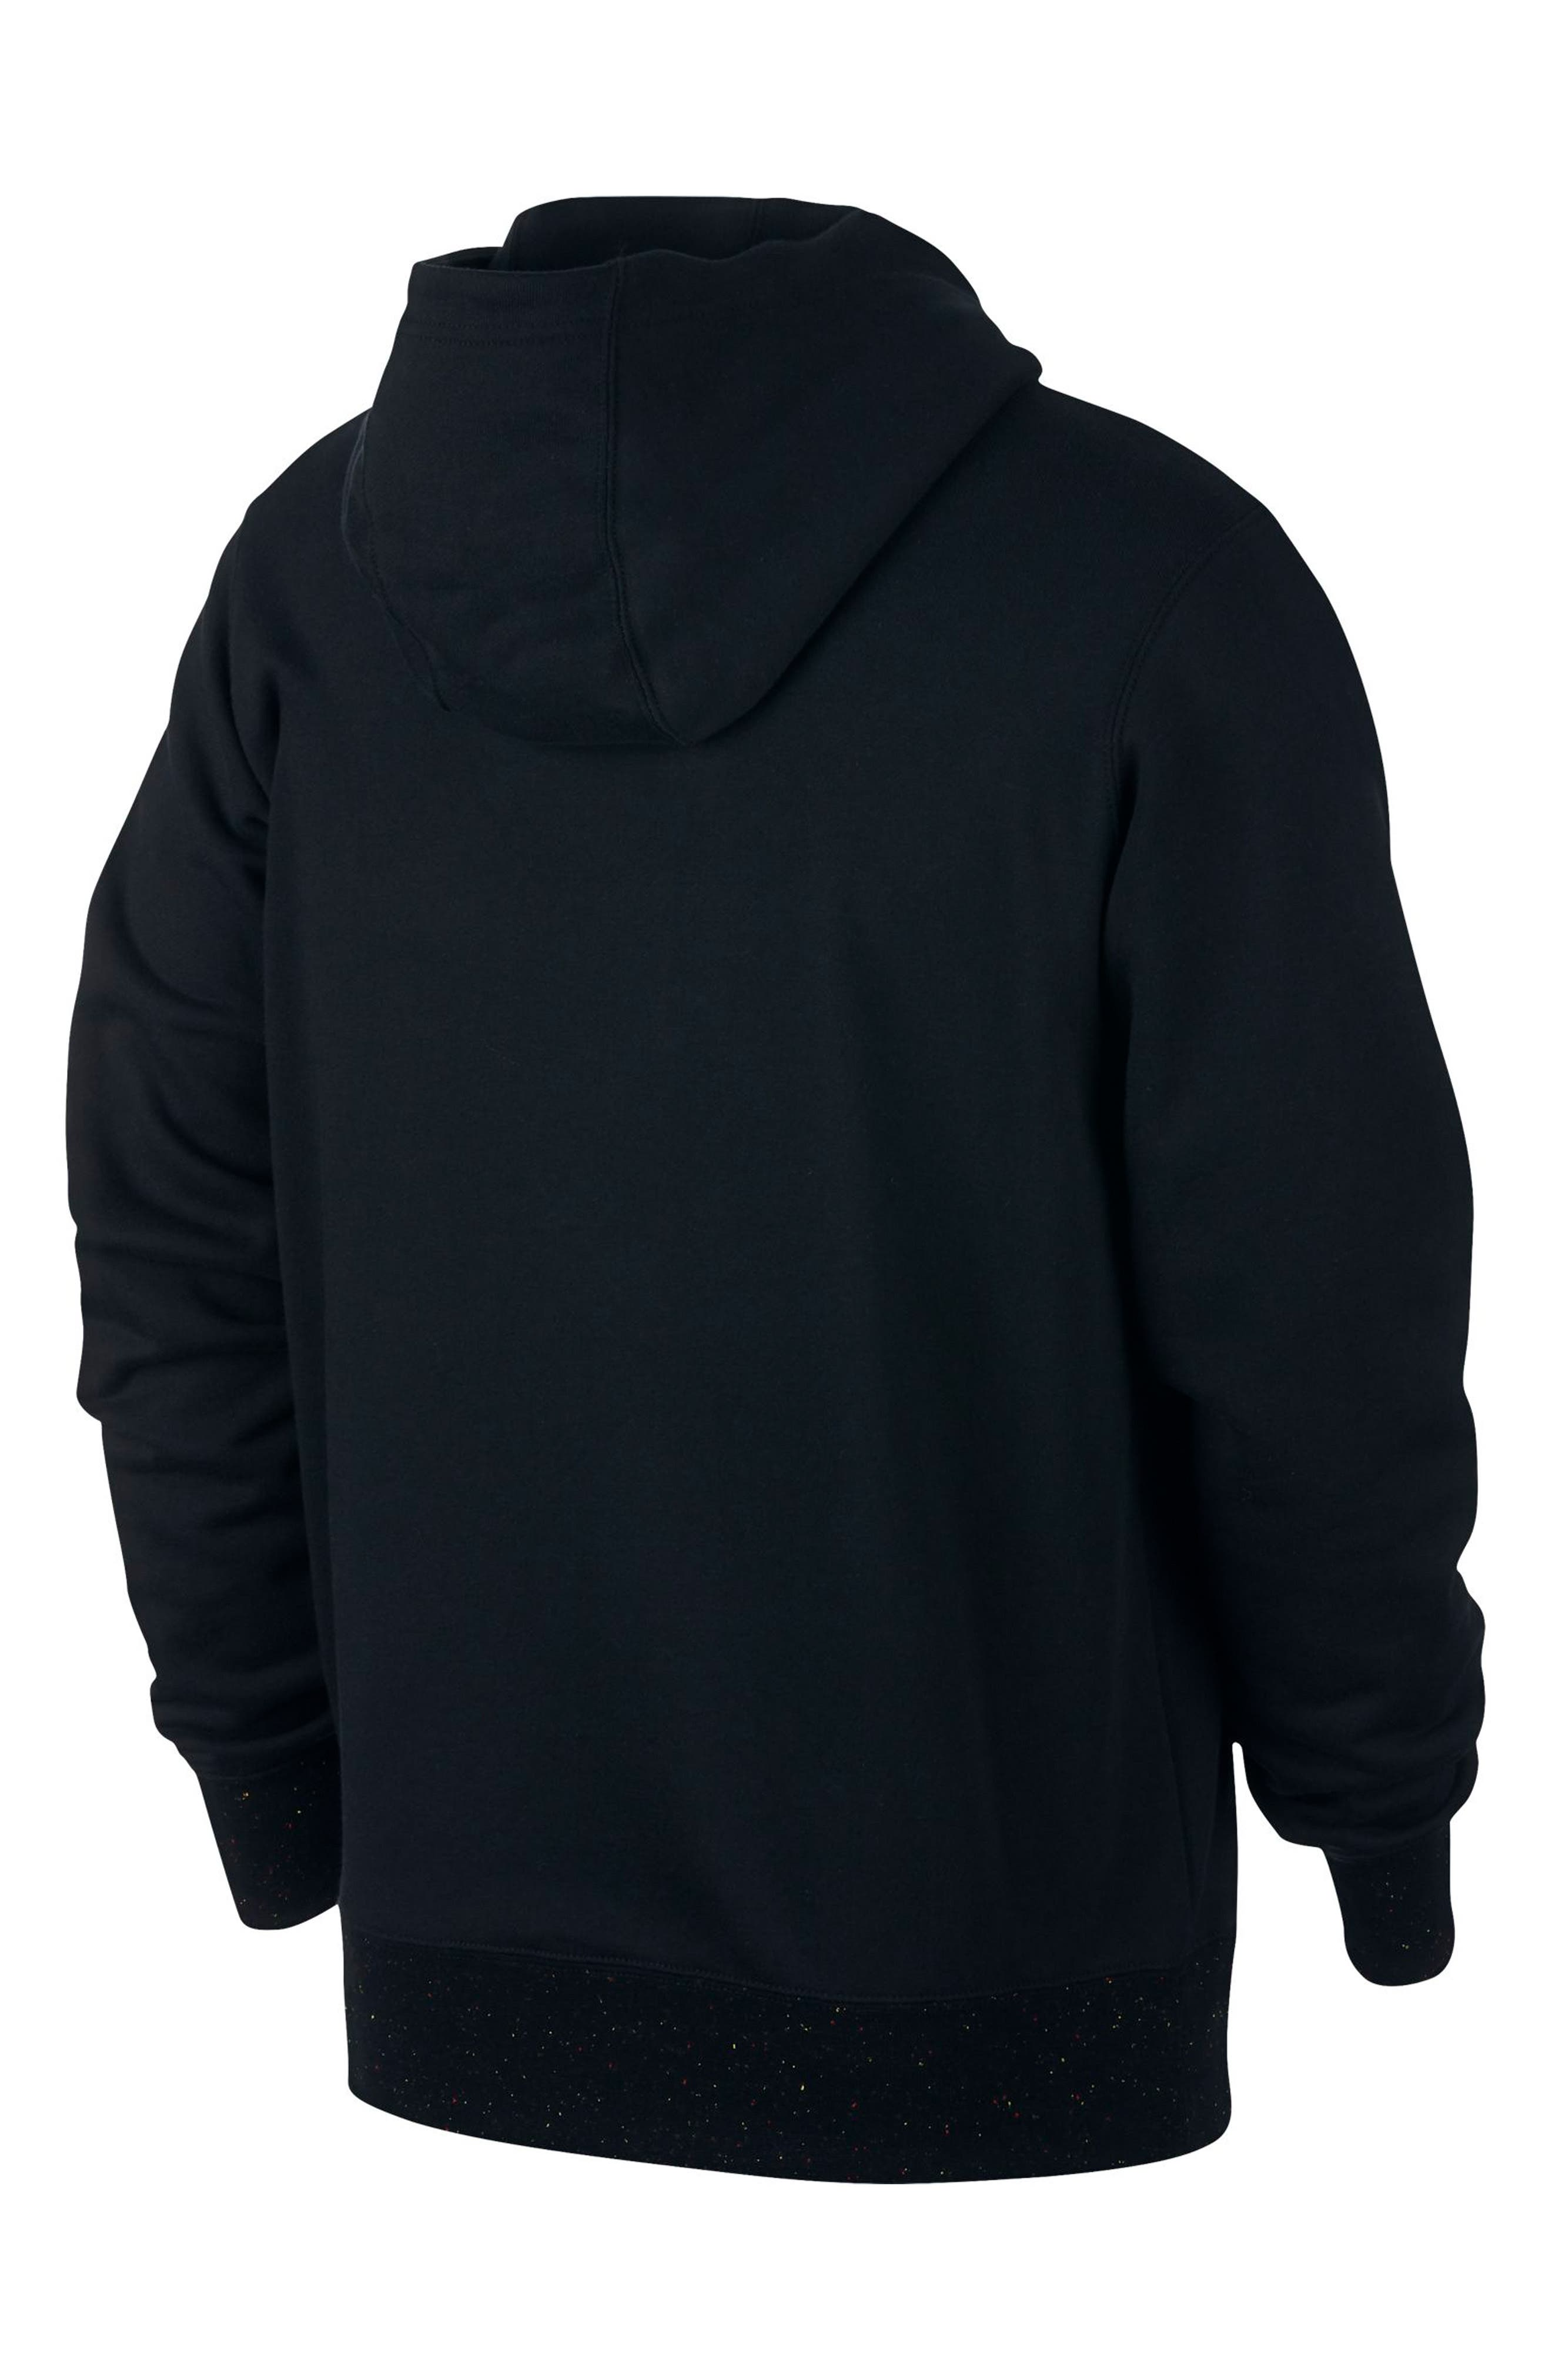 Sportswear ACG Pullover Hoodie,                             Alternate thumbnail 4, color,                             010